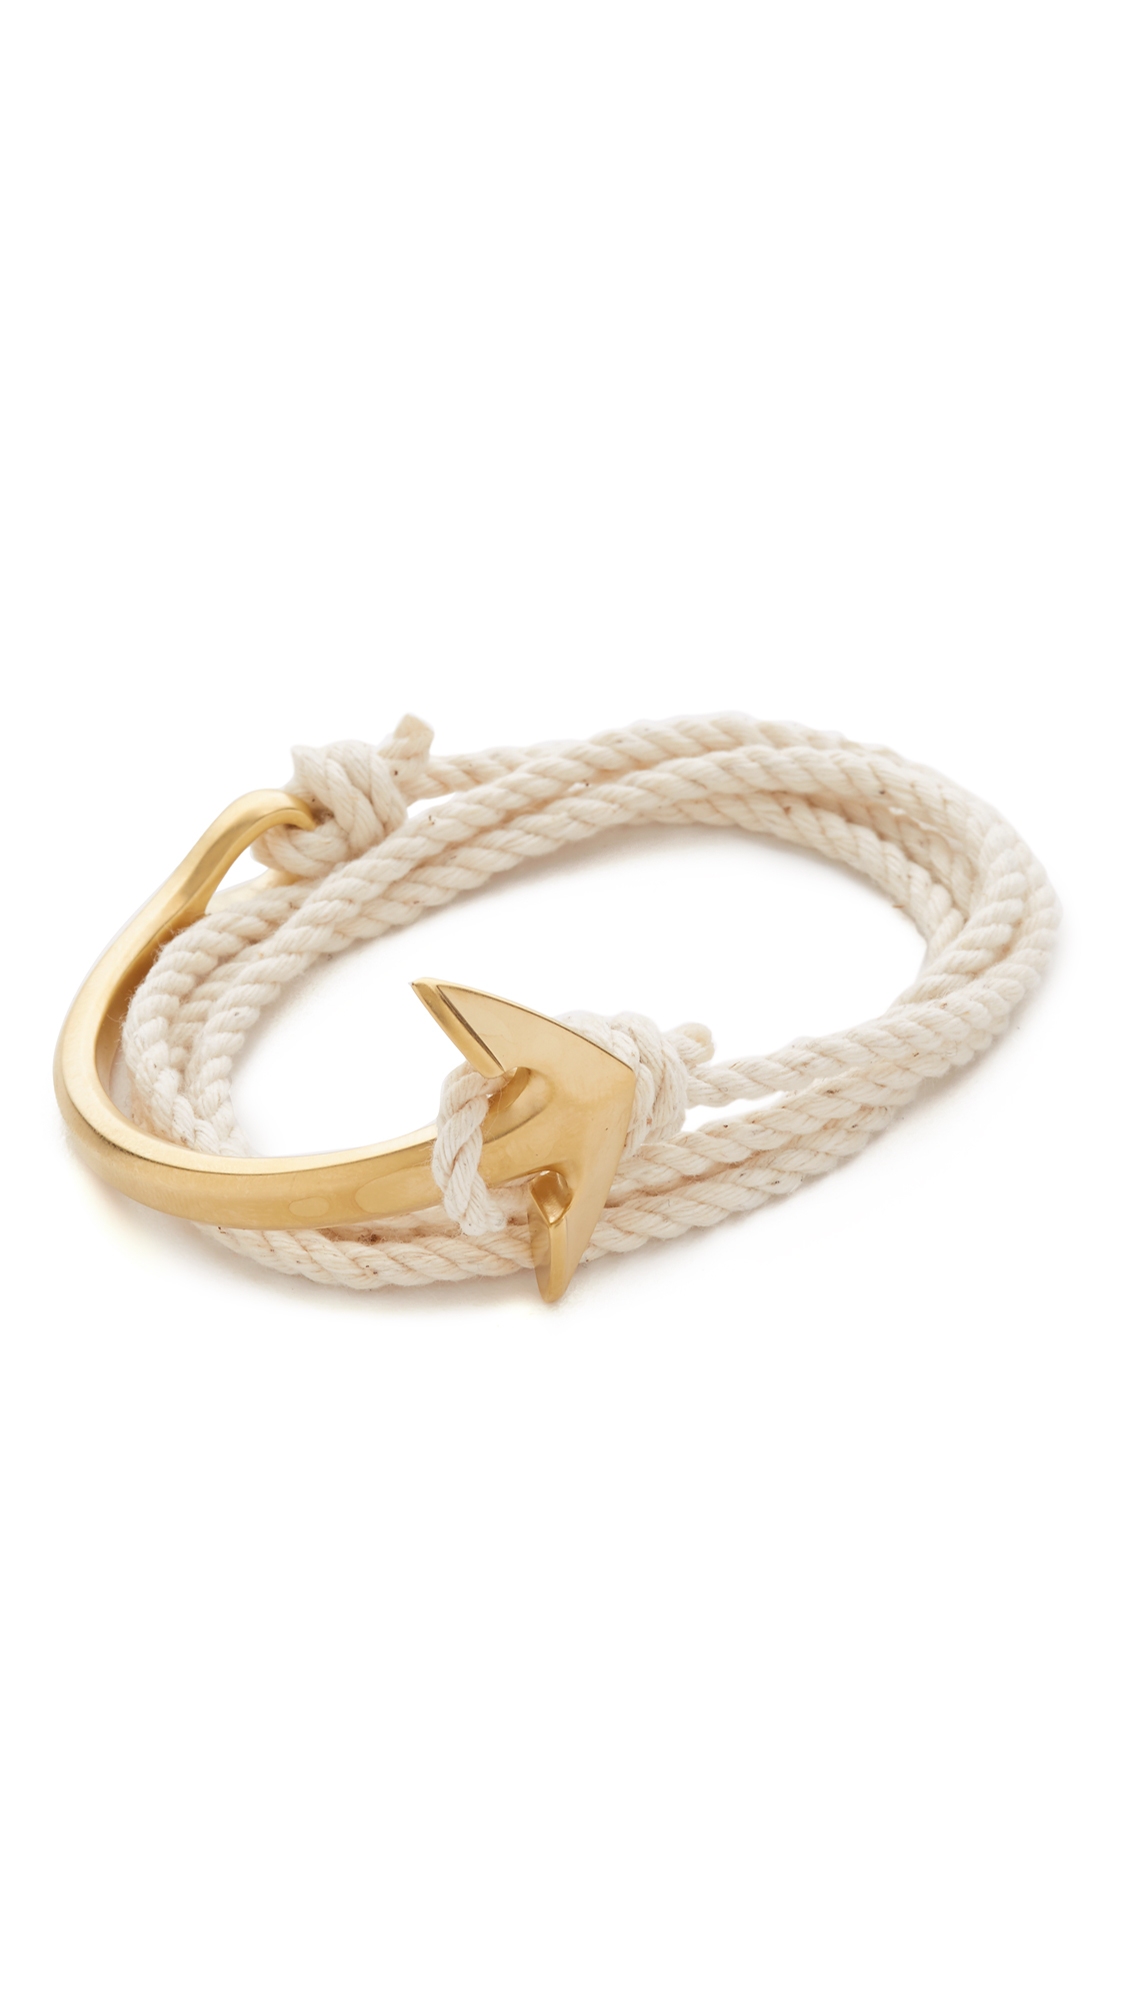 musings each the bracelet great new and wait foxtrot arent bracelets cant summer store for its them handmade these in rope maine arrive nautical is we to